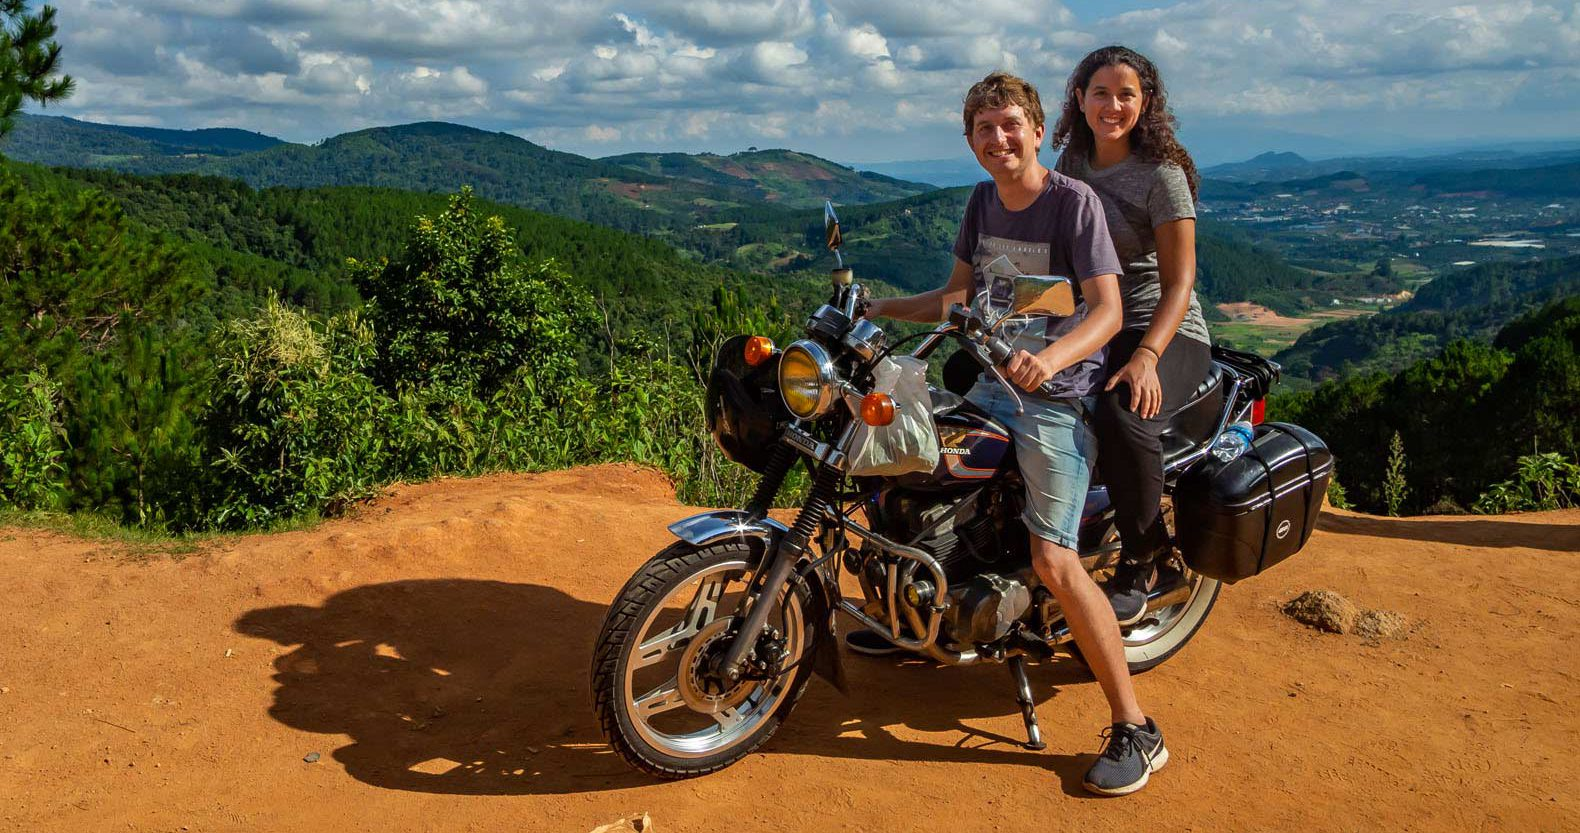 Sightseeing around Dalat with an Easyrider